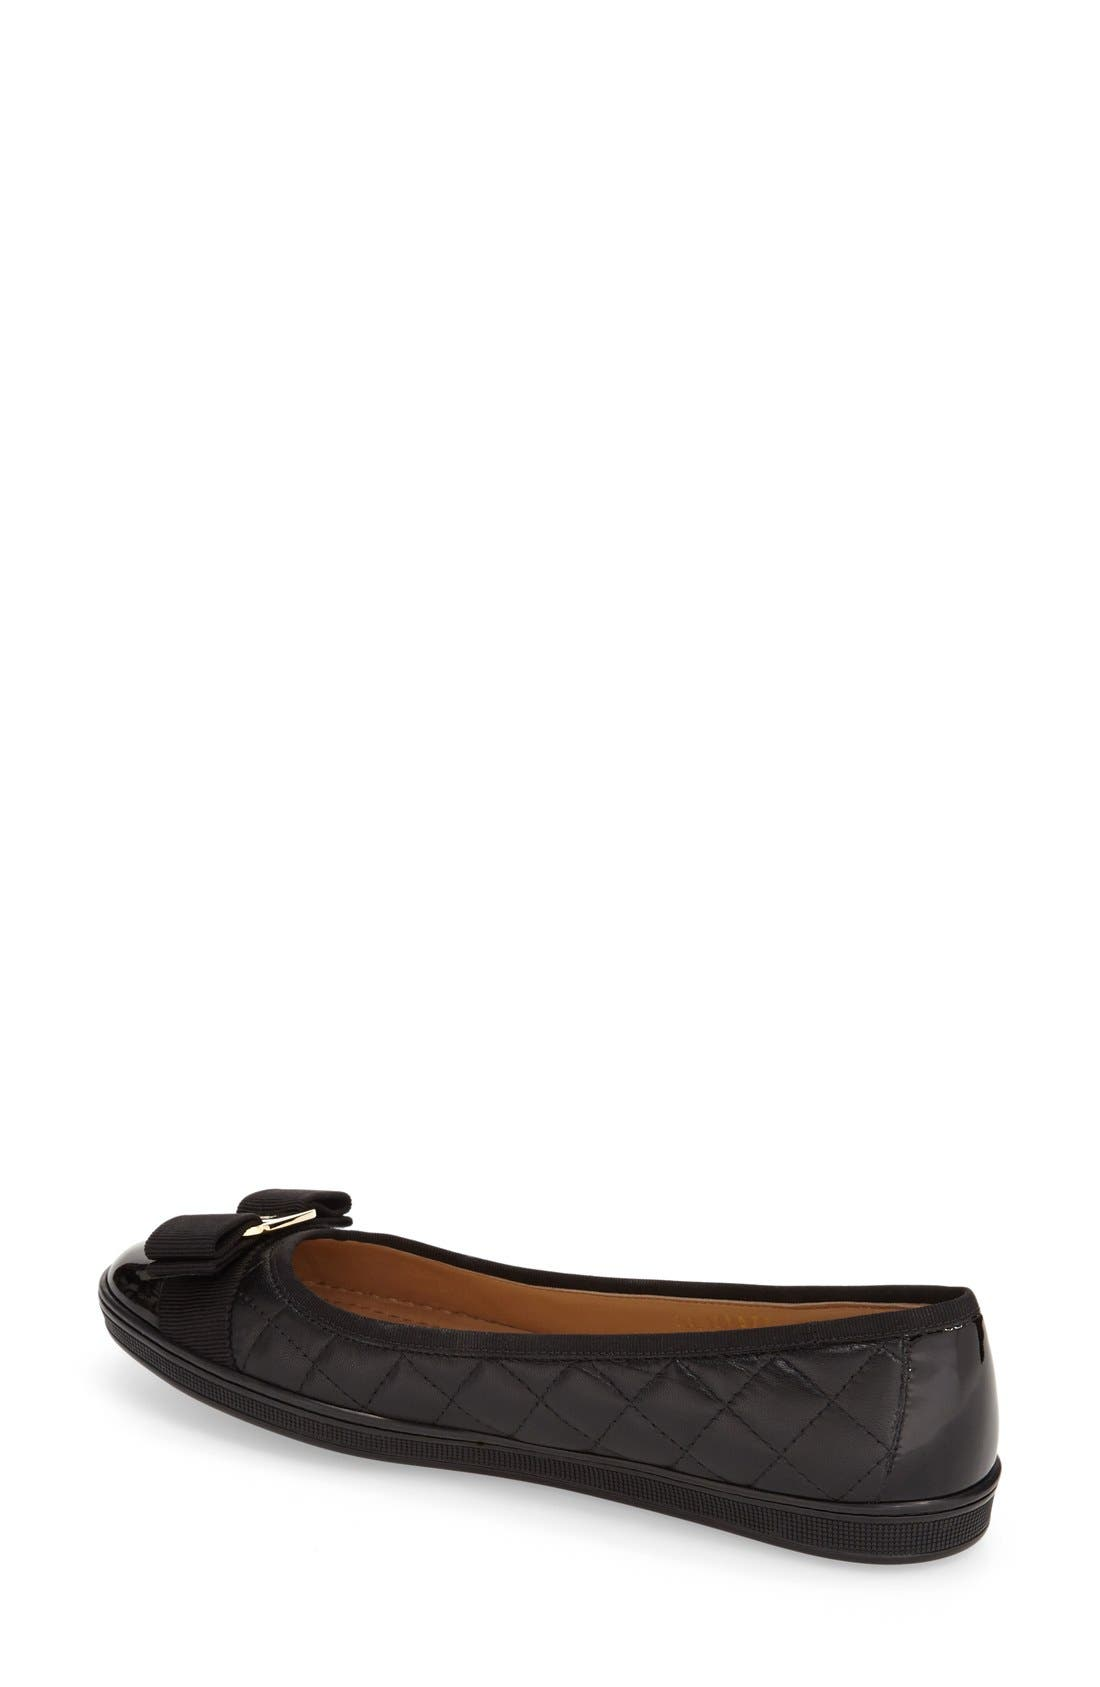 Alternate Image 2  - Salvatore Ferragamo Quilted Skimmer Flat (Women)